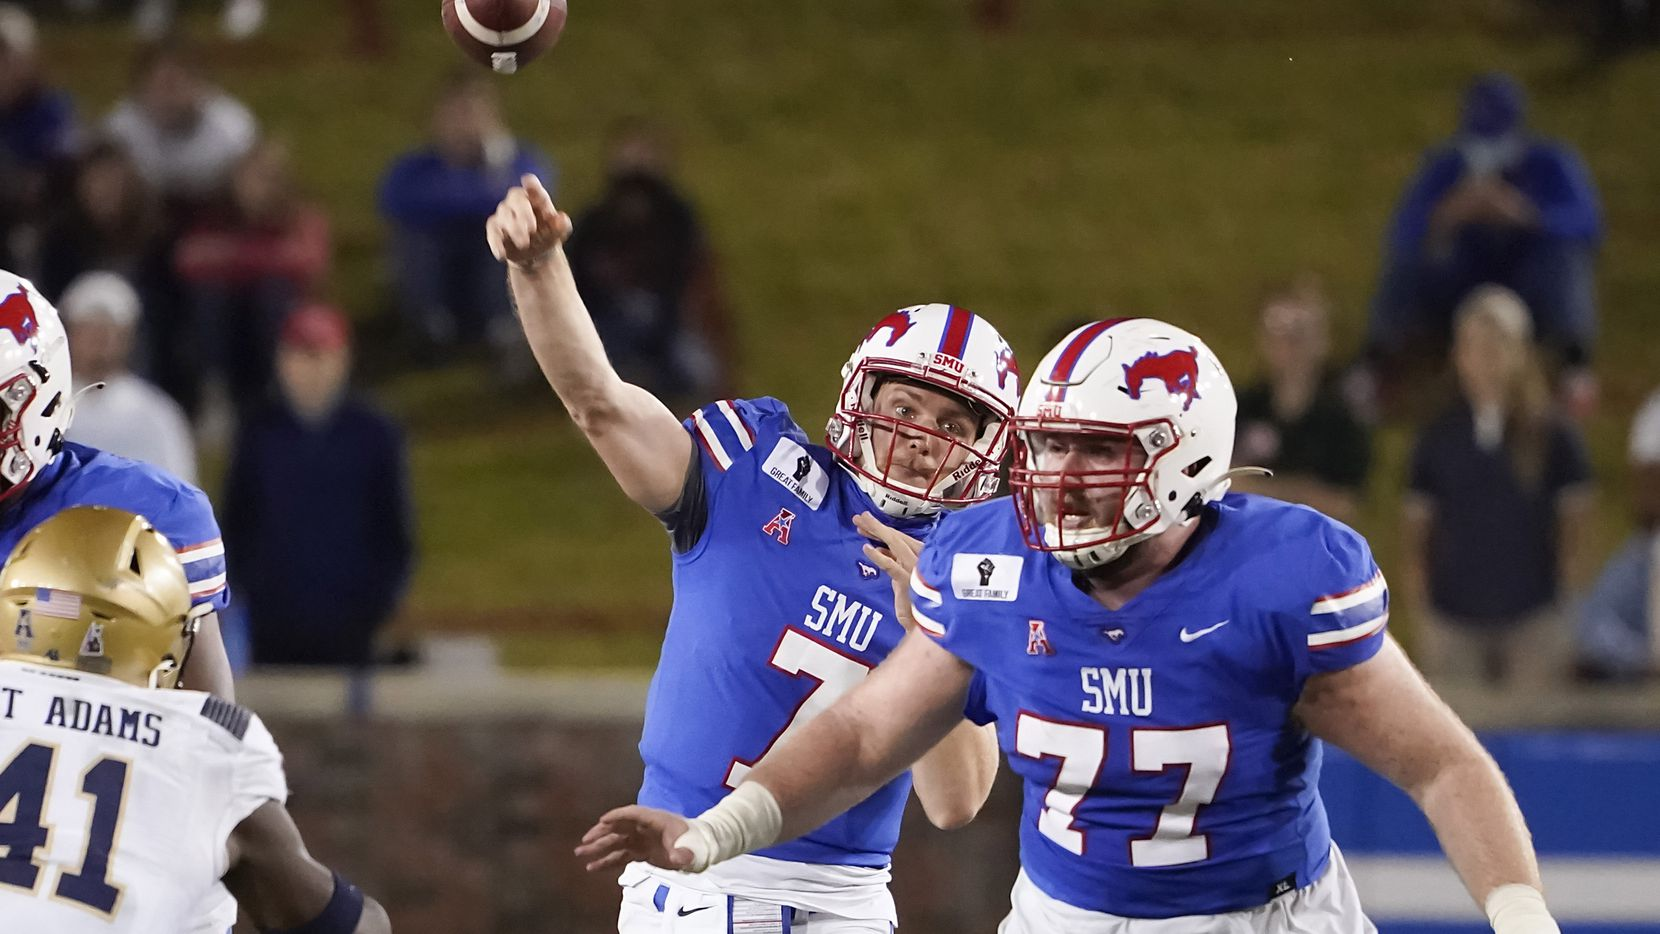 SMU quarterback Shane Buechele (7) throws a pass behind the protection of SMU offensive lineman Alan Ali (77) during the second quarter of an NCAA football game against Navy at Ford Stadium on Saturday, Oct. 31, 2020, in Dallas. (Smiley N. Pool/The Dallas Morning News)